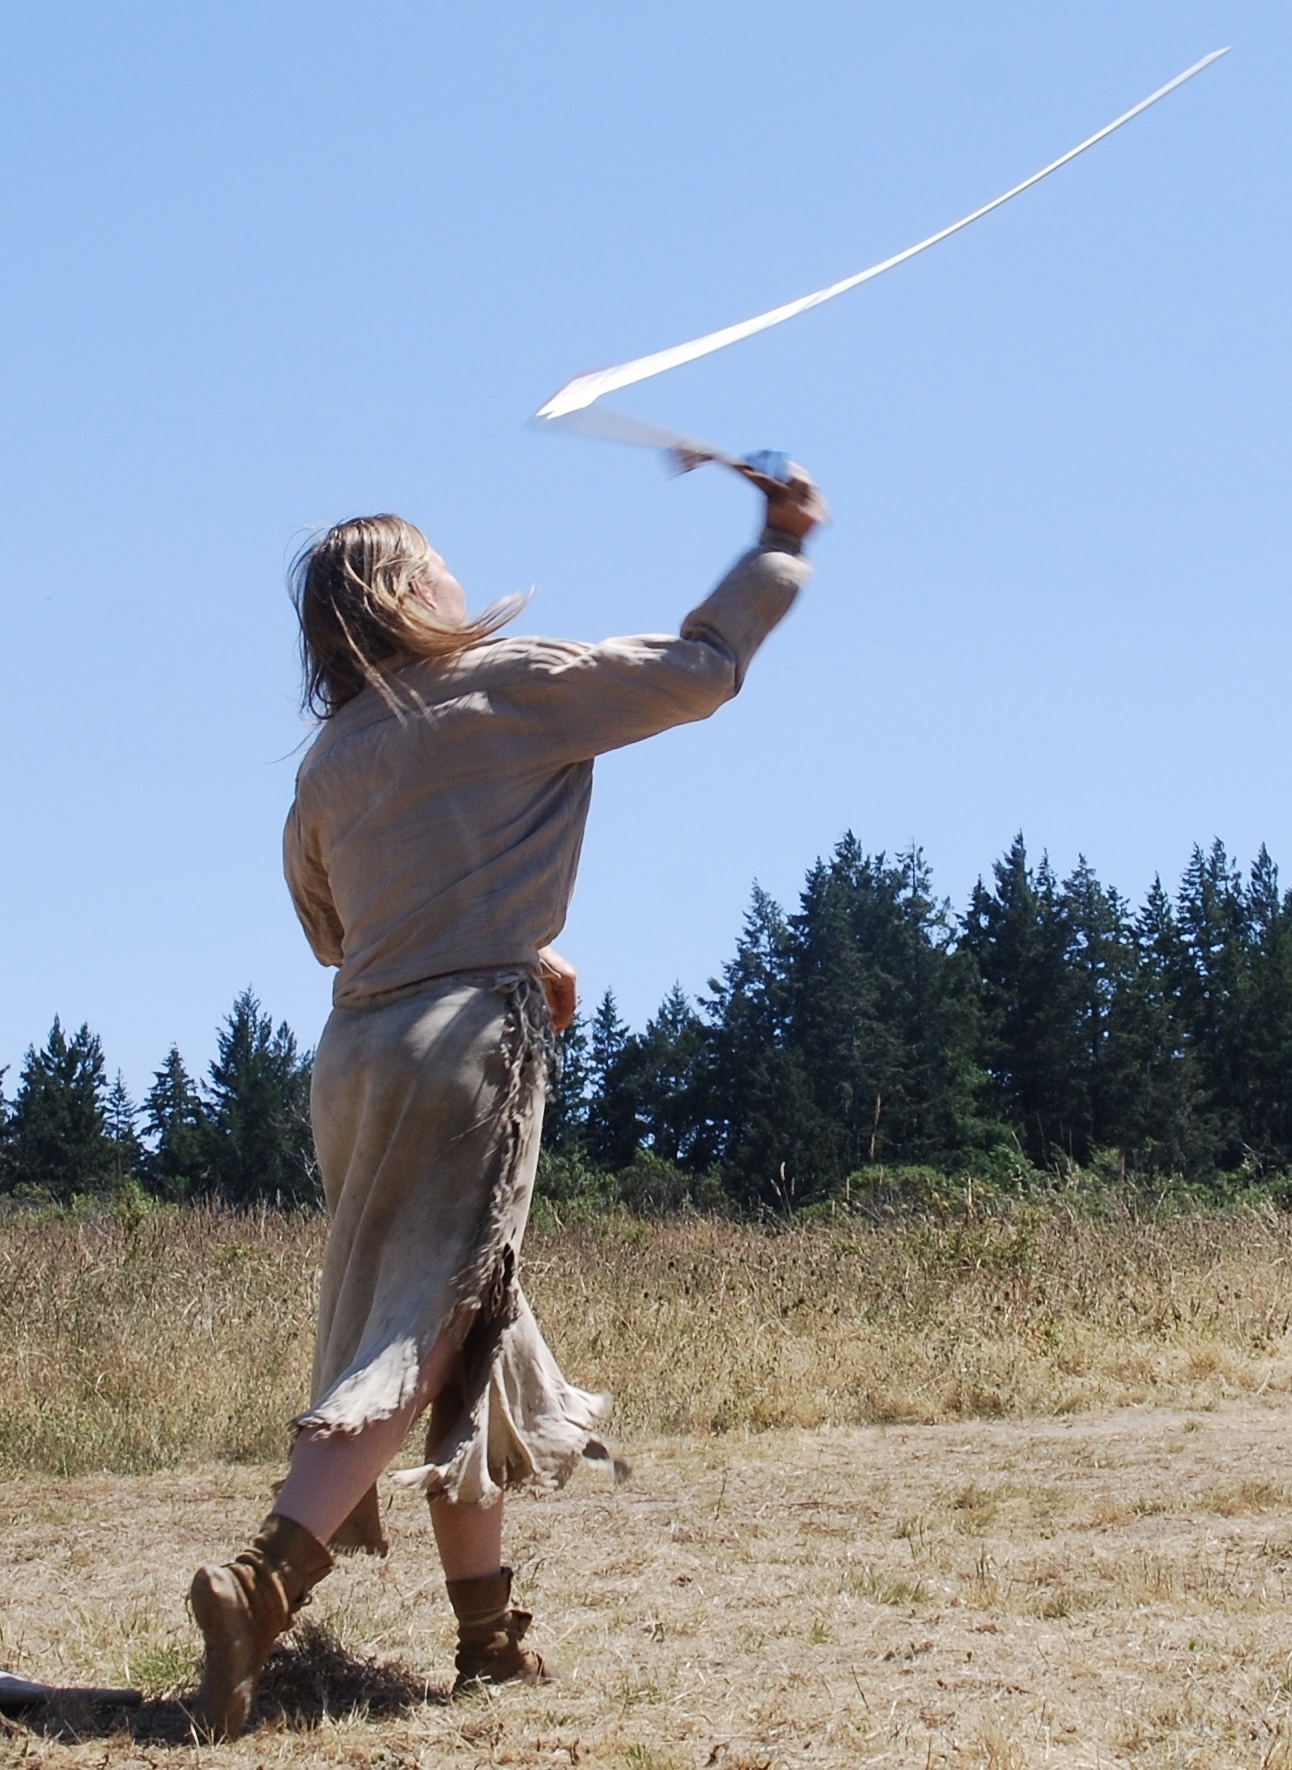 Atlatl in motion. The dart is about to fly away from the thrower.